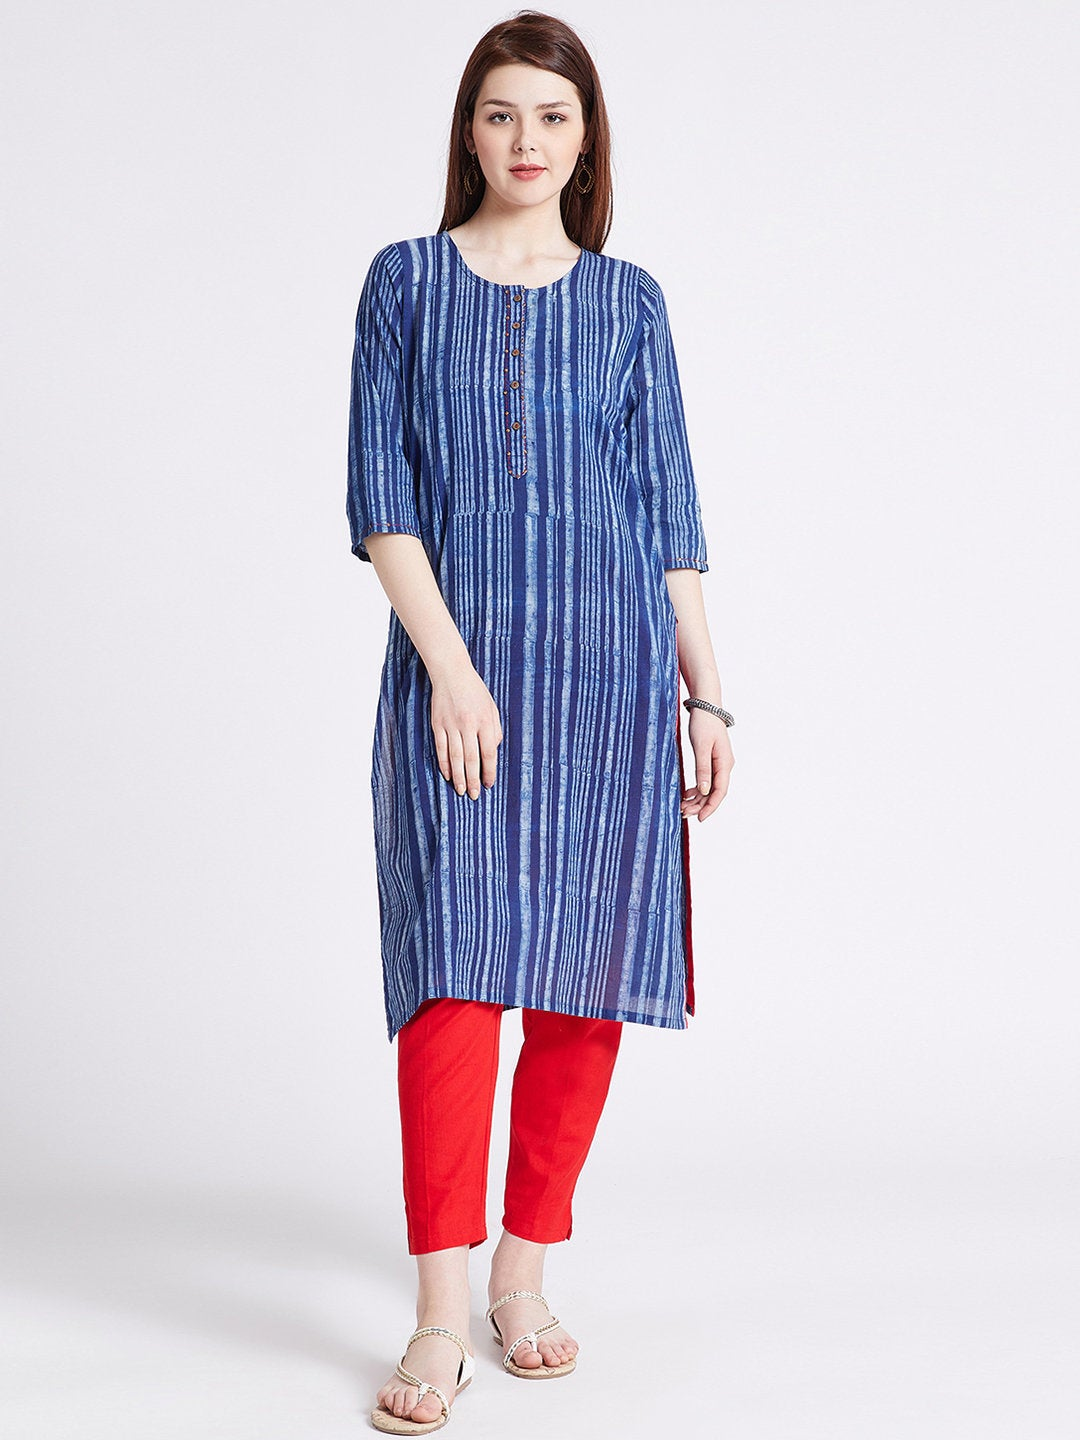 Indigo Hand block printed ethnic long Indian pocket kurta contrast trims & kantha hand embroidery